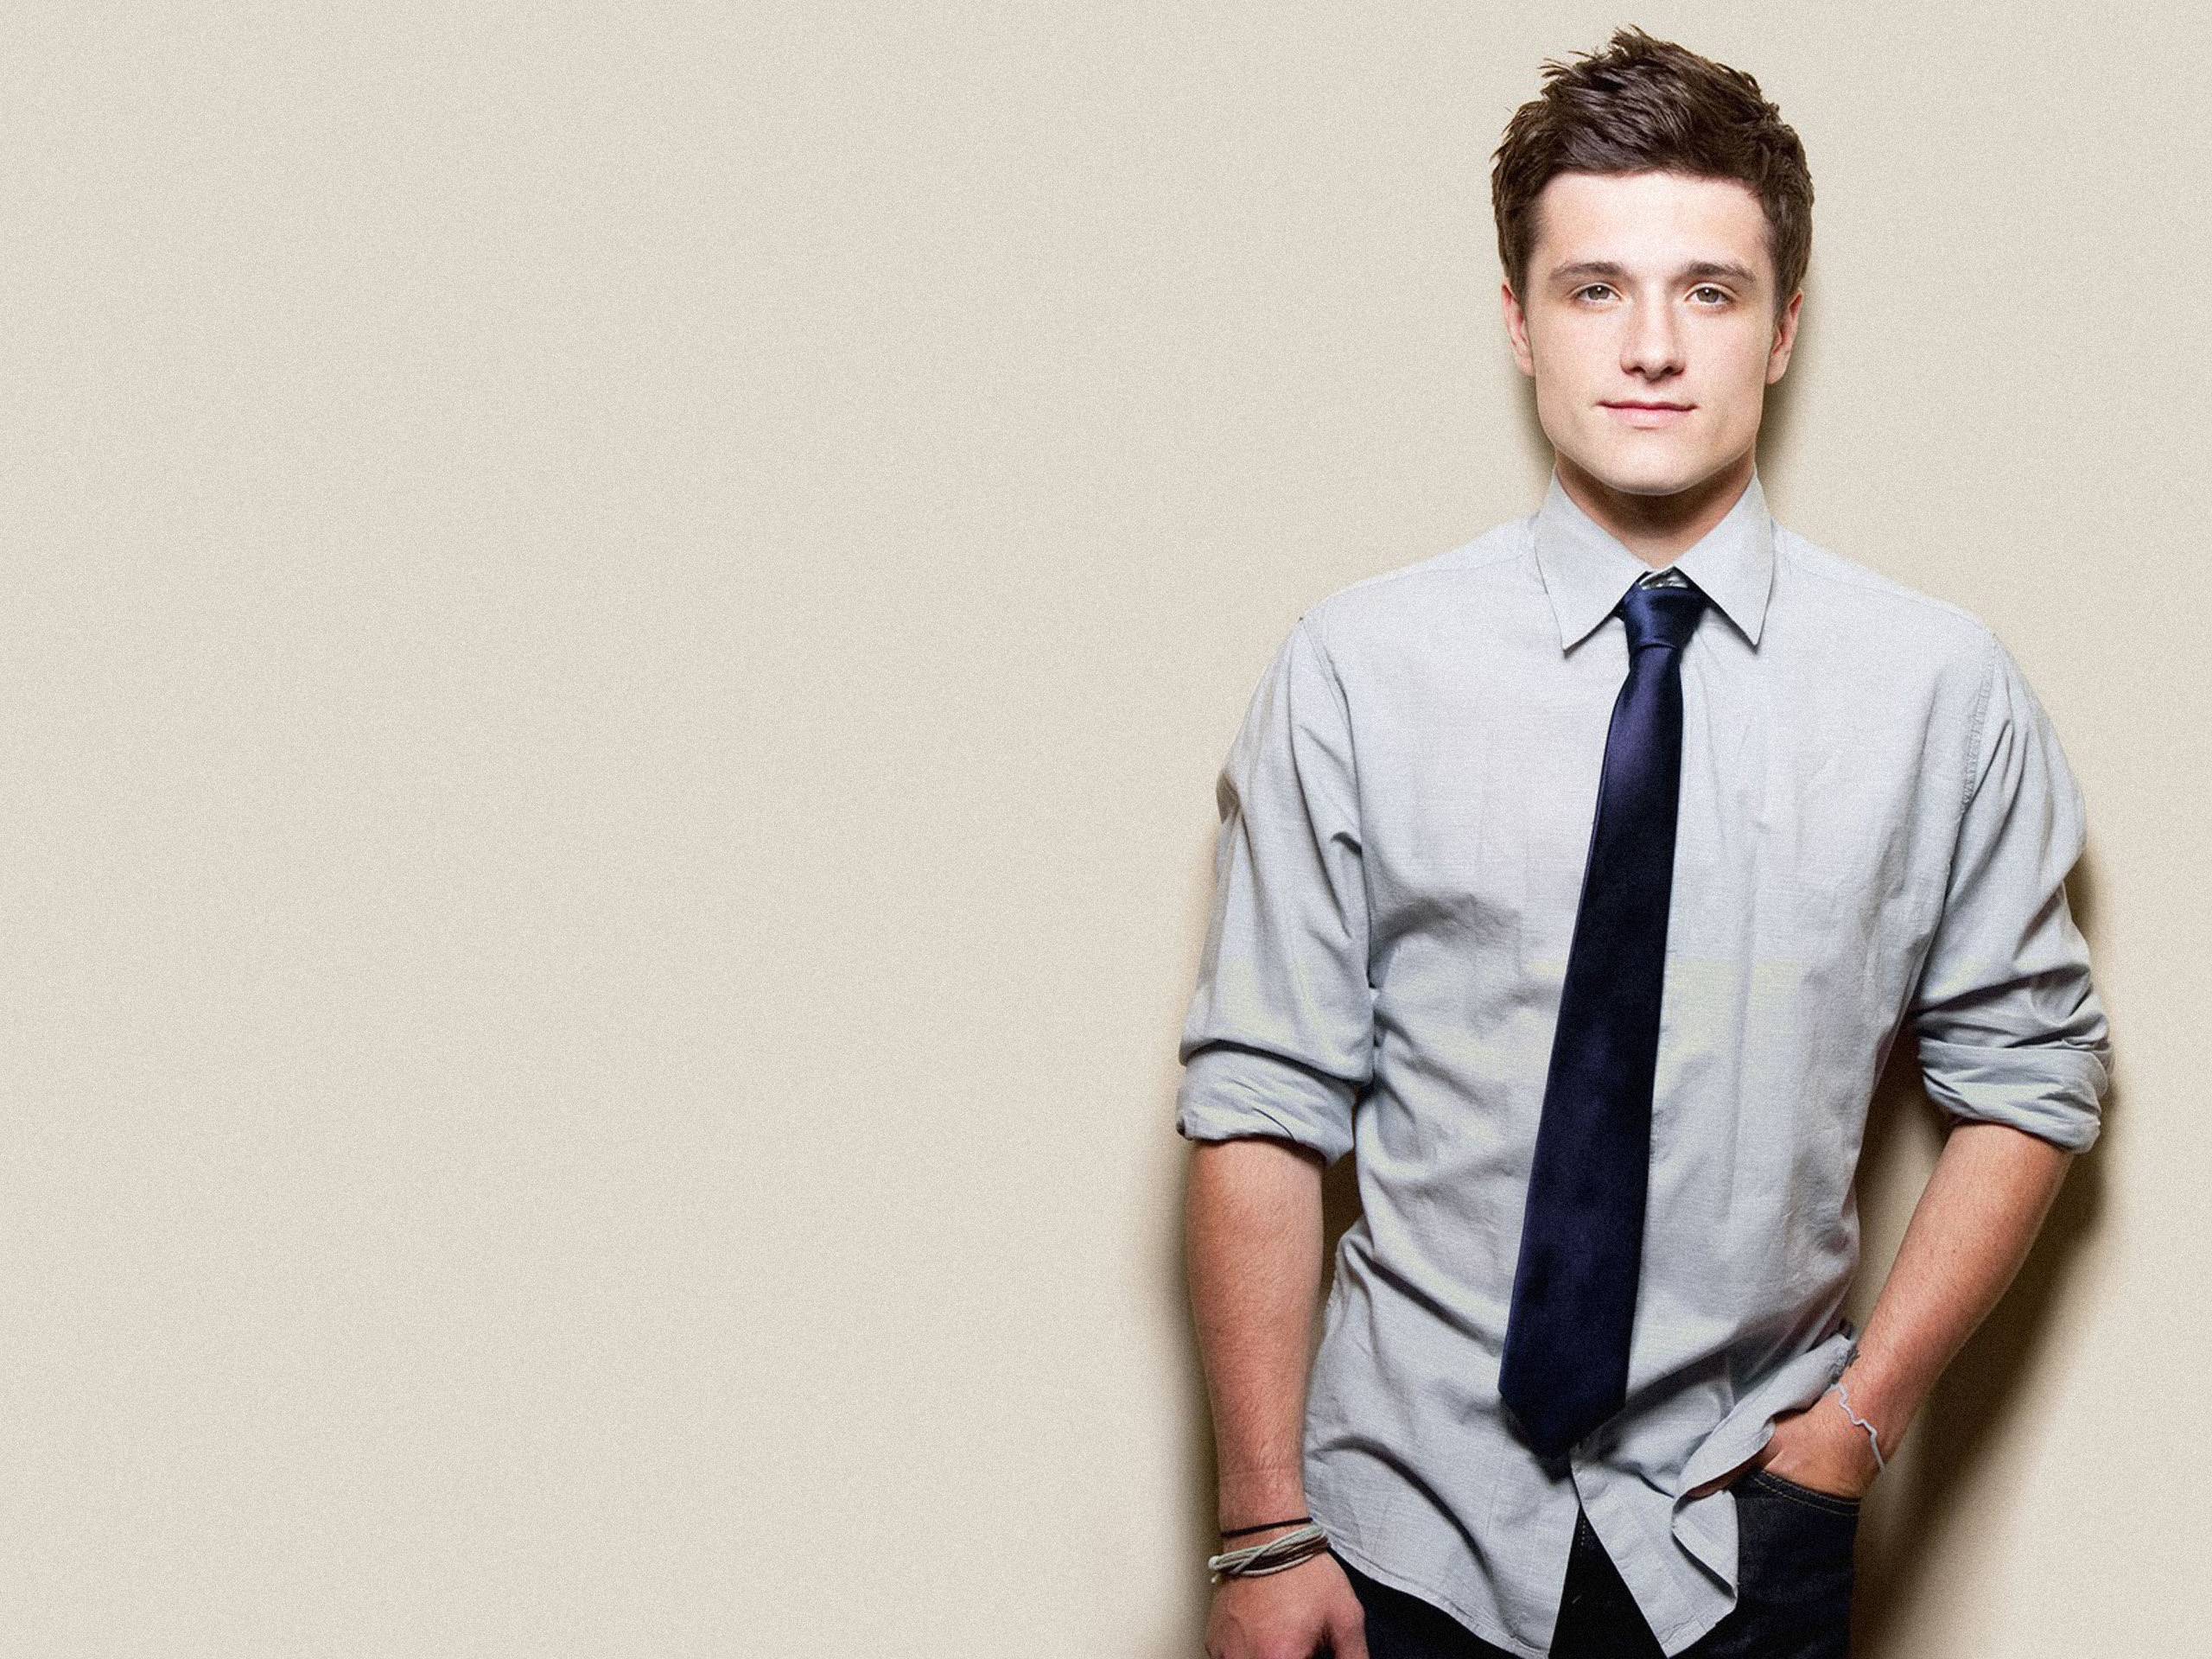 Fantastic Josh Hutcherson Wallpaper